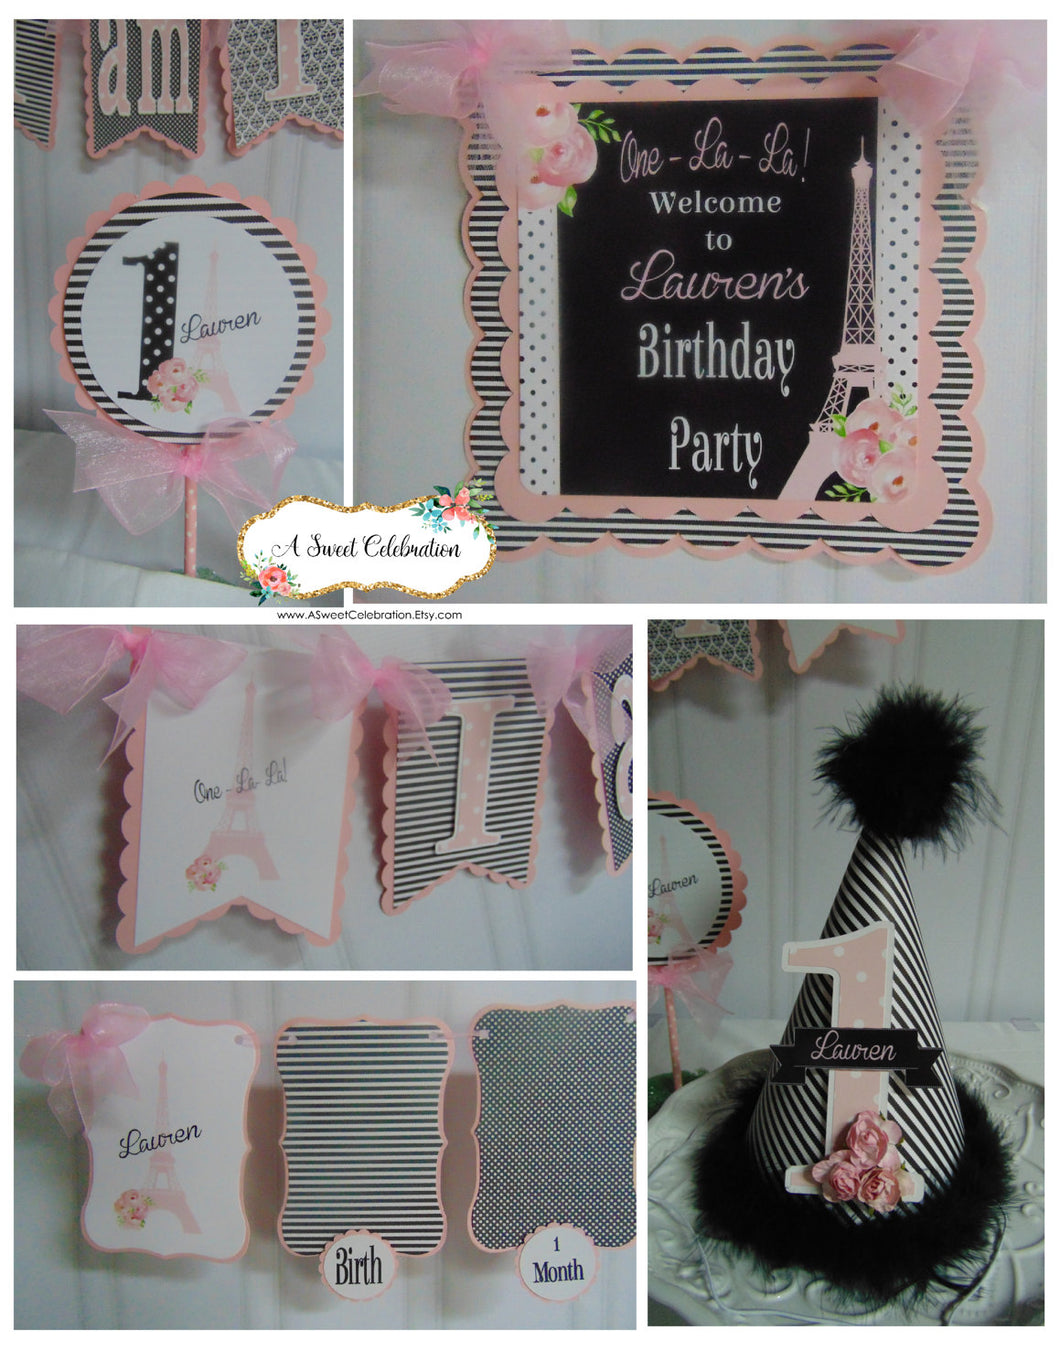 PARIS - PETITE - 1ST BIRTHDAY PARTY PACKAGE